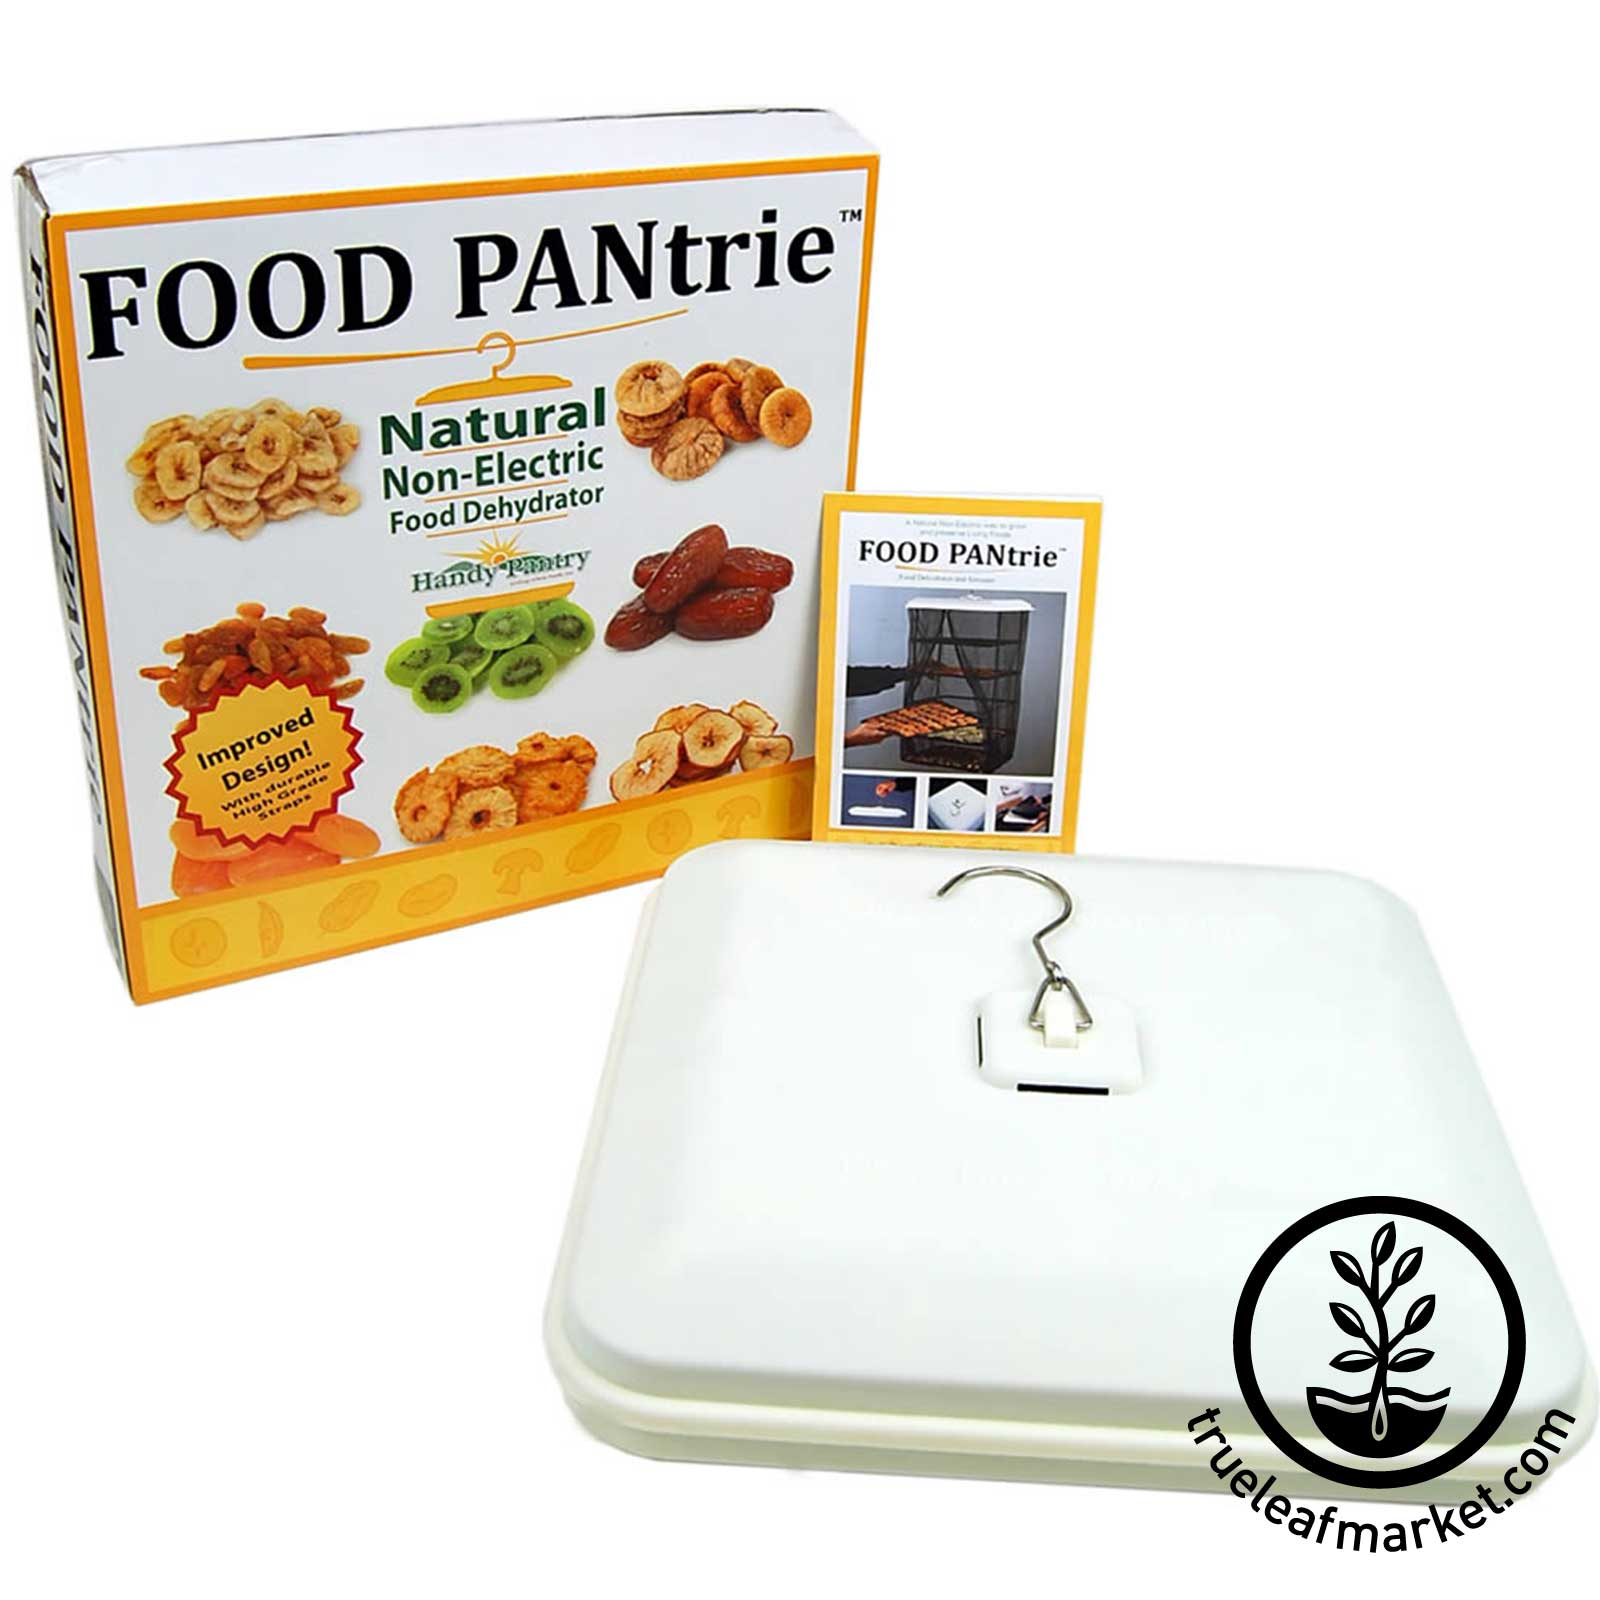 Hanging Food Pantrie by Handy Pantry